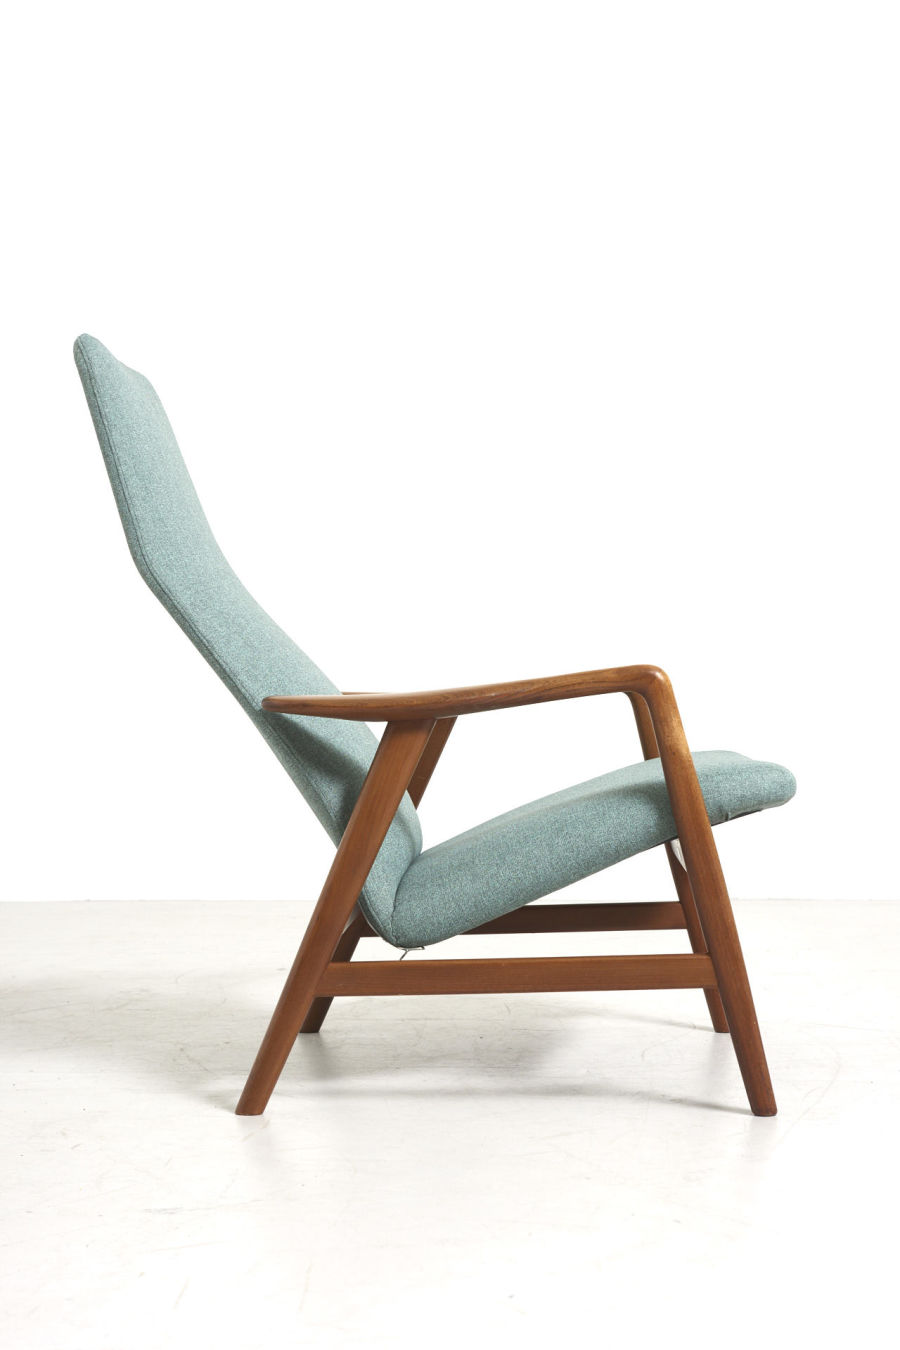 modestfurniture-vintage-0491-fritz-hansen-lounge-reclining-chair09